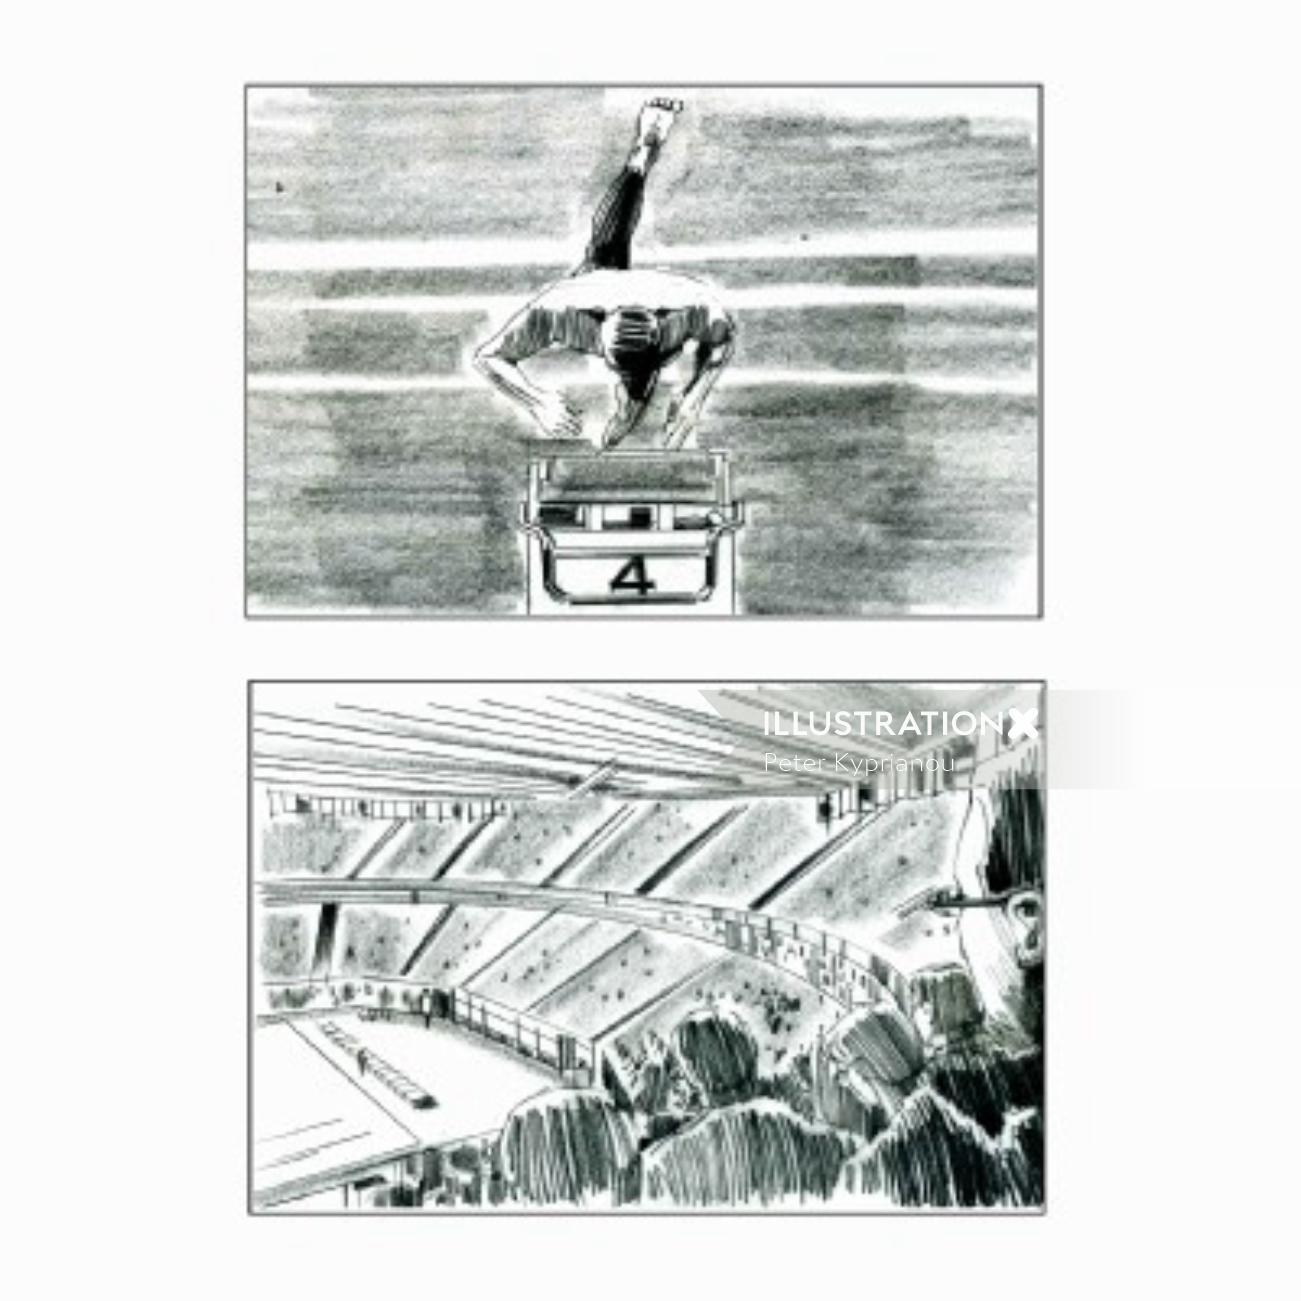 Storyboard of swimming stadium